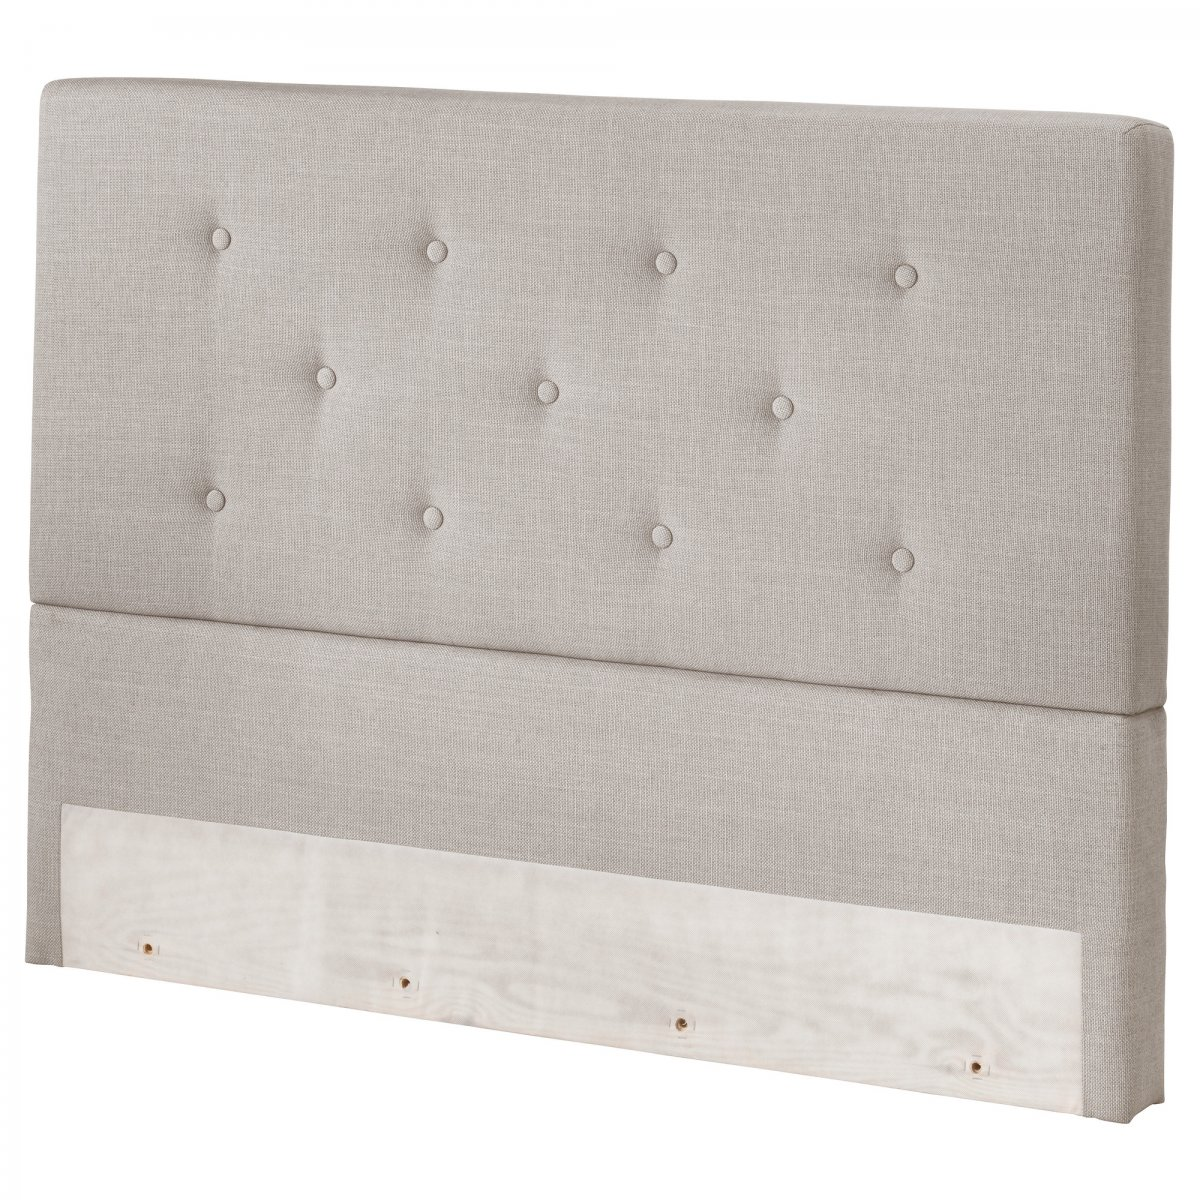 Headboard at ikea give your bedroom more storages and stylish homesfeed for Ikea cuscini testata letto